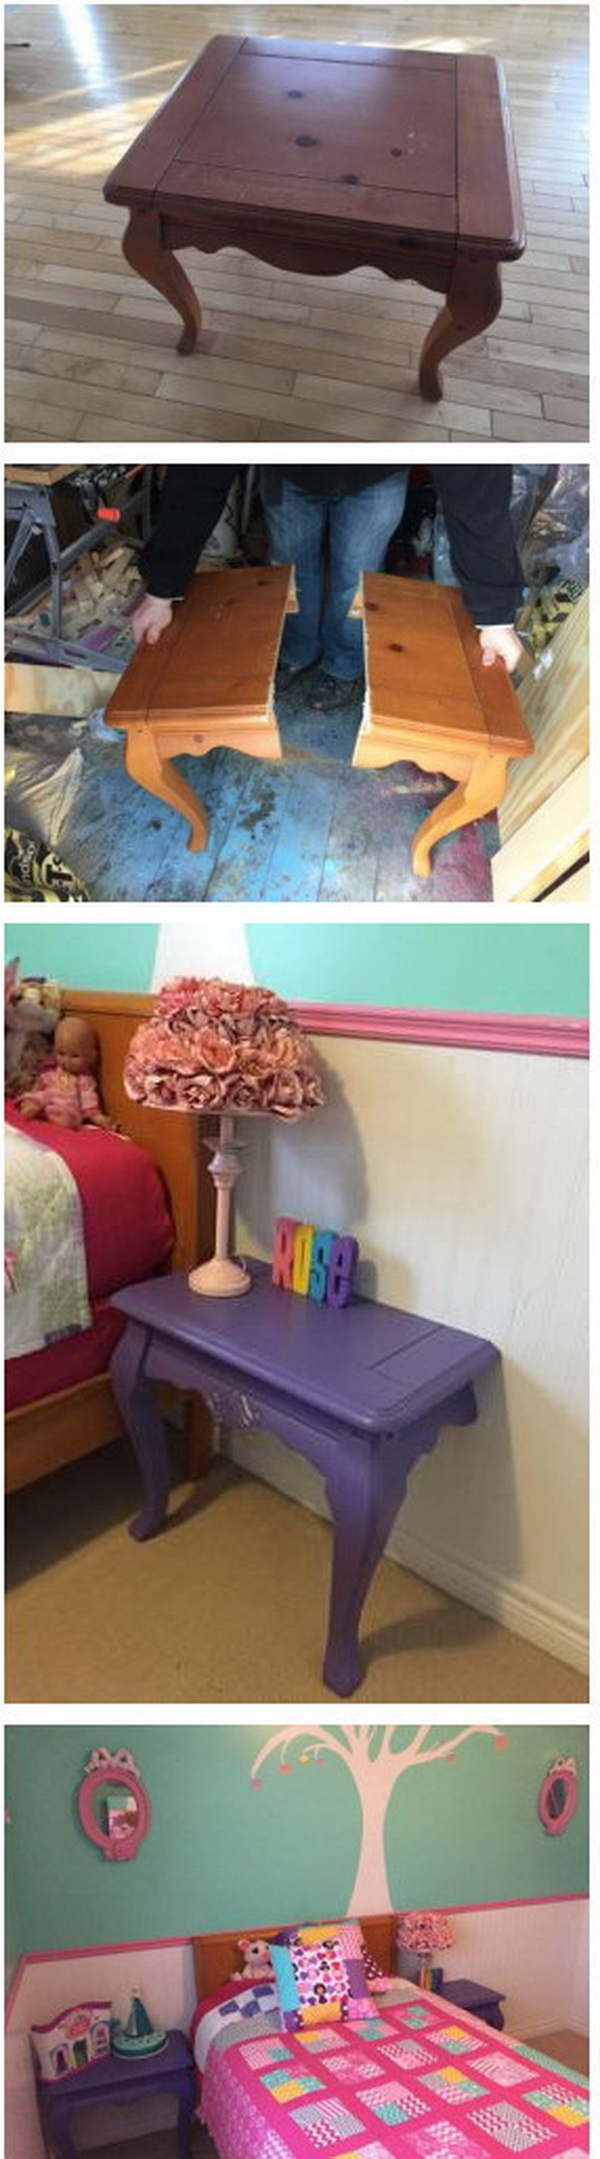 Magical Multiplying Nightstands: Turn one end table that you never use into two DIY nightstands for your bedroom. What an easy and creative DIY furniture for your home!